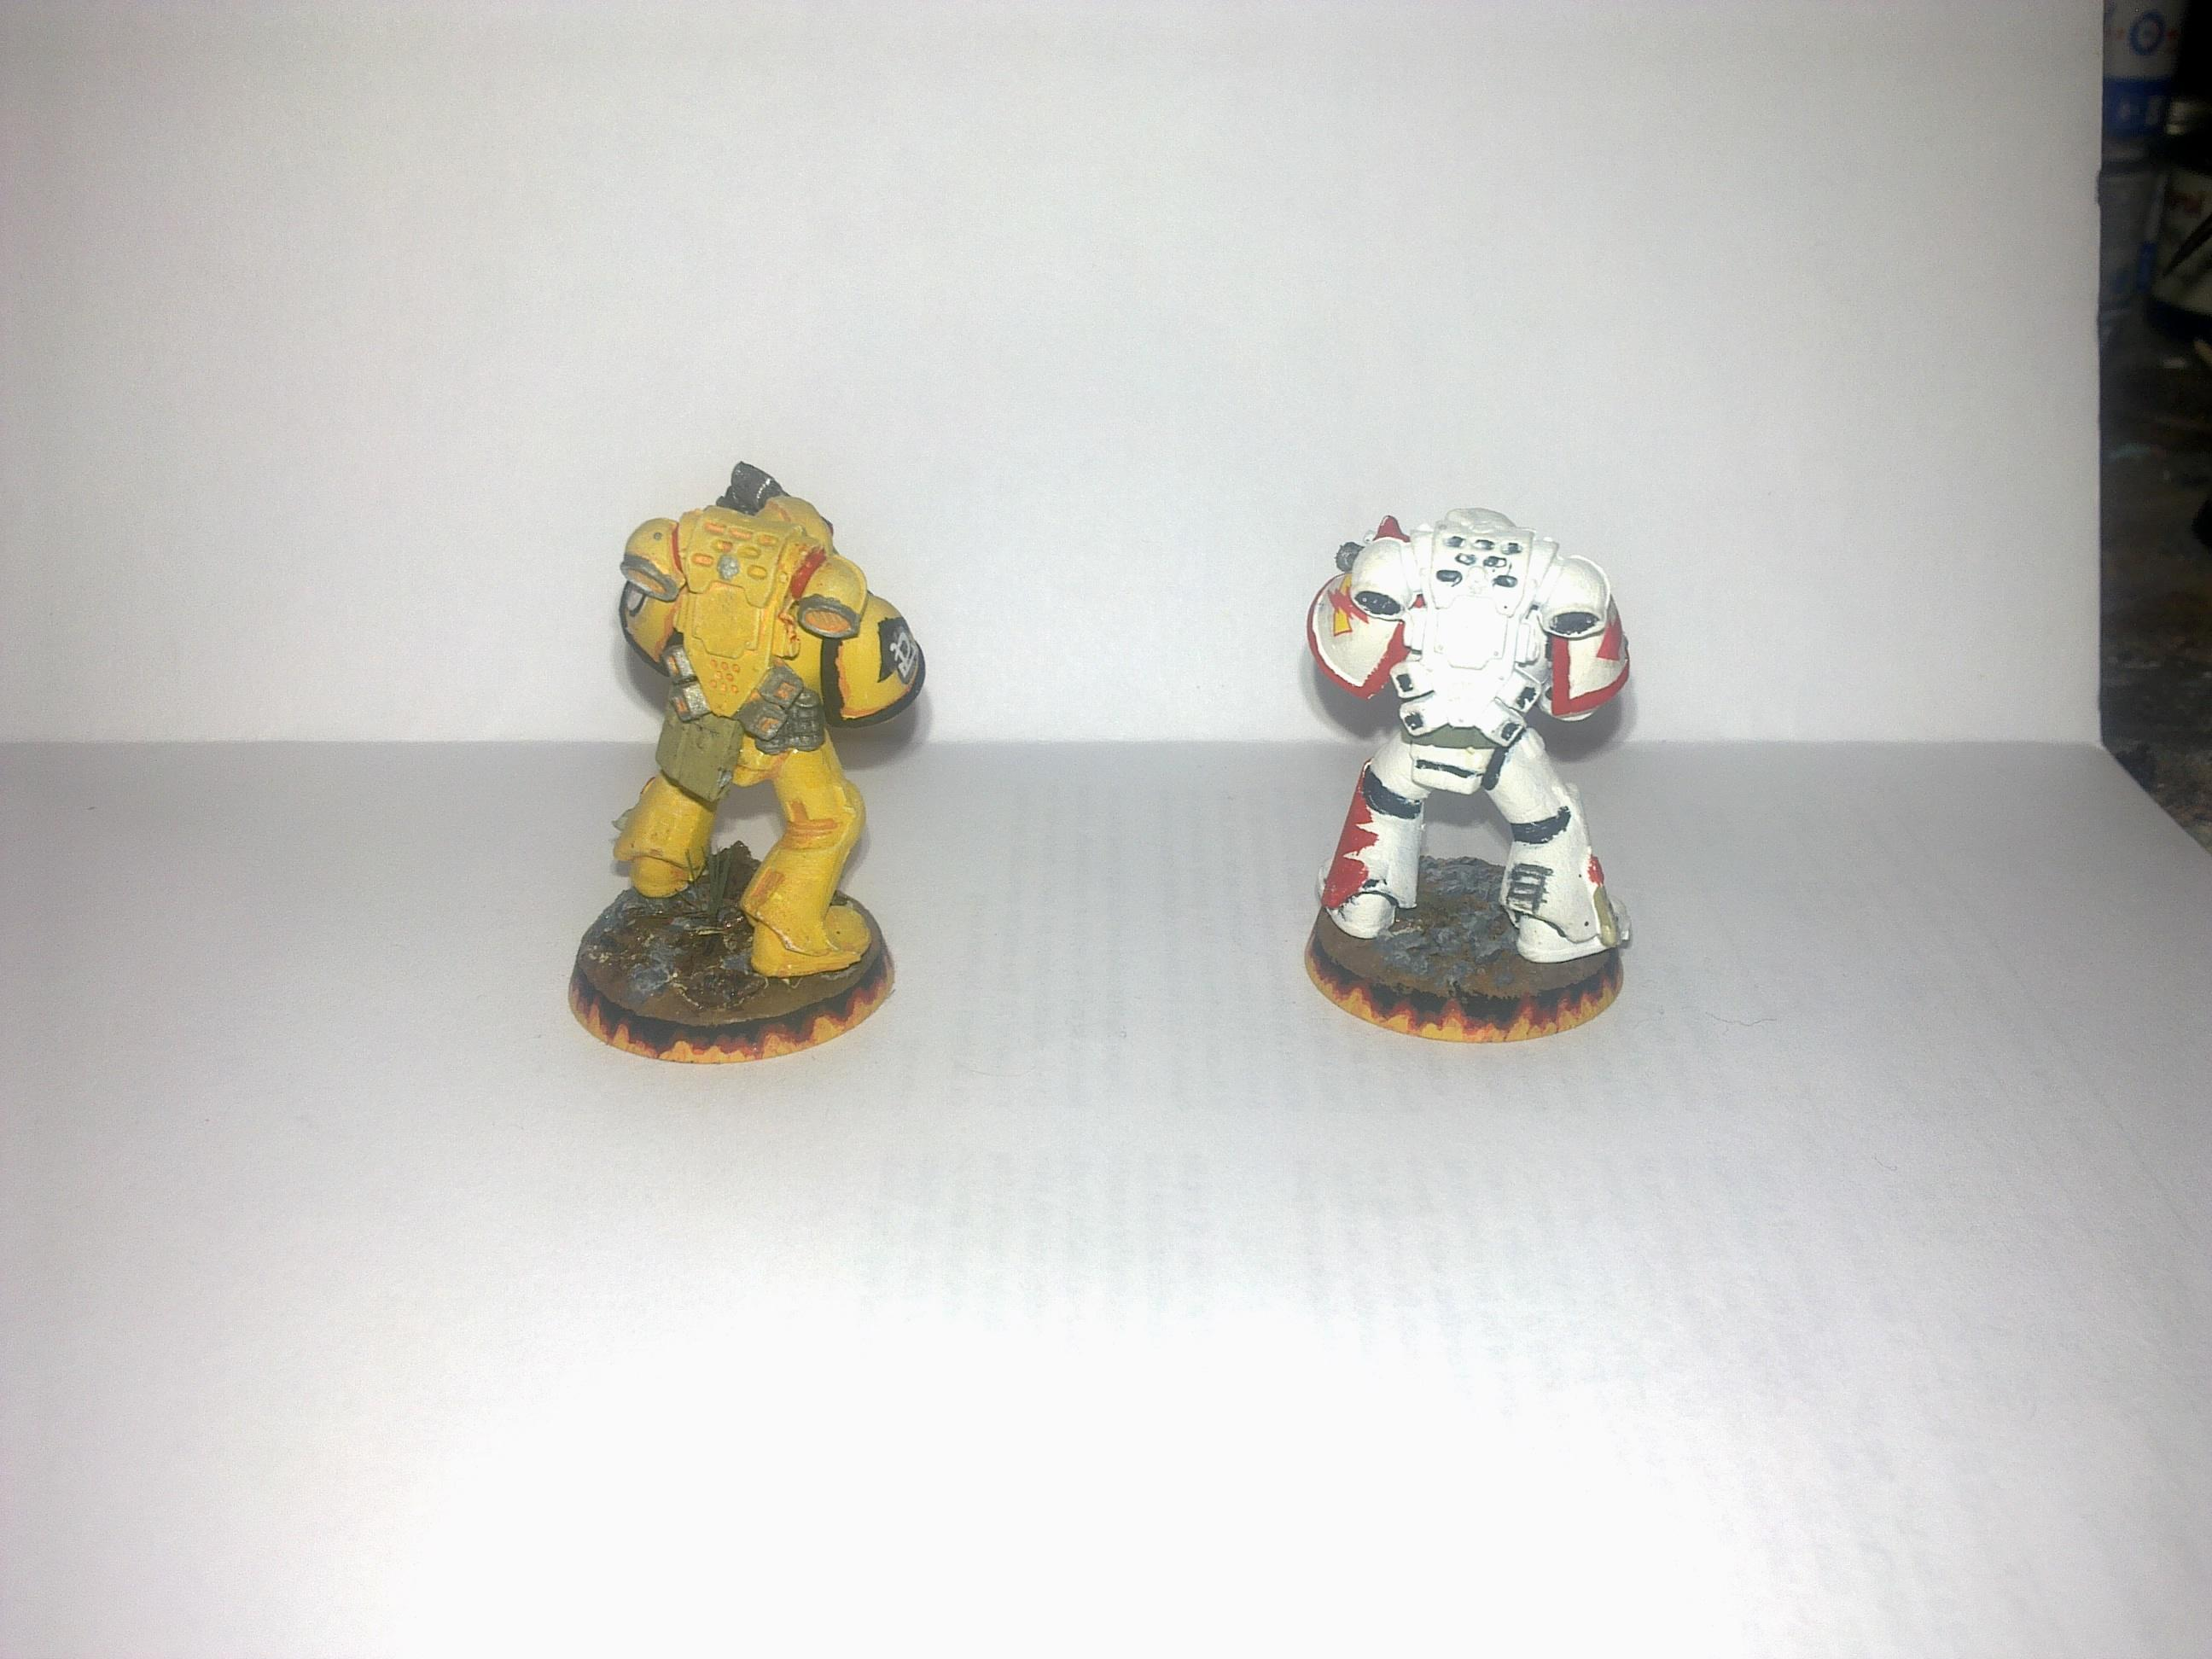 Imperial Fists, Spacemarine, Tactical Squad, Warhammer 40,000, White Scar